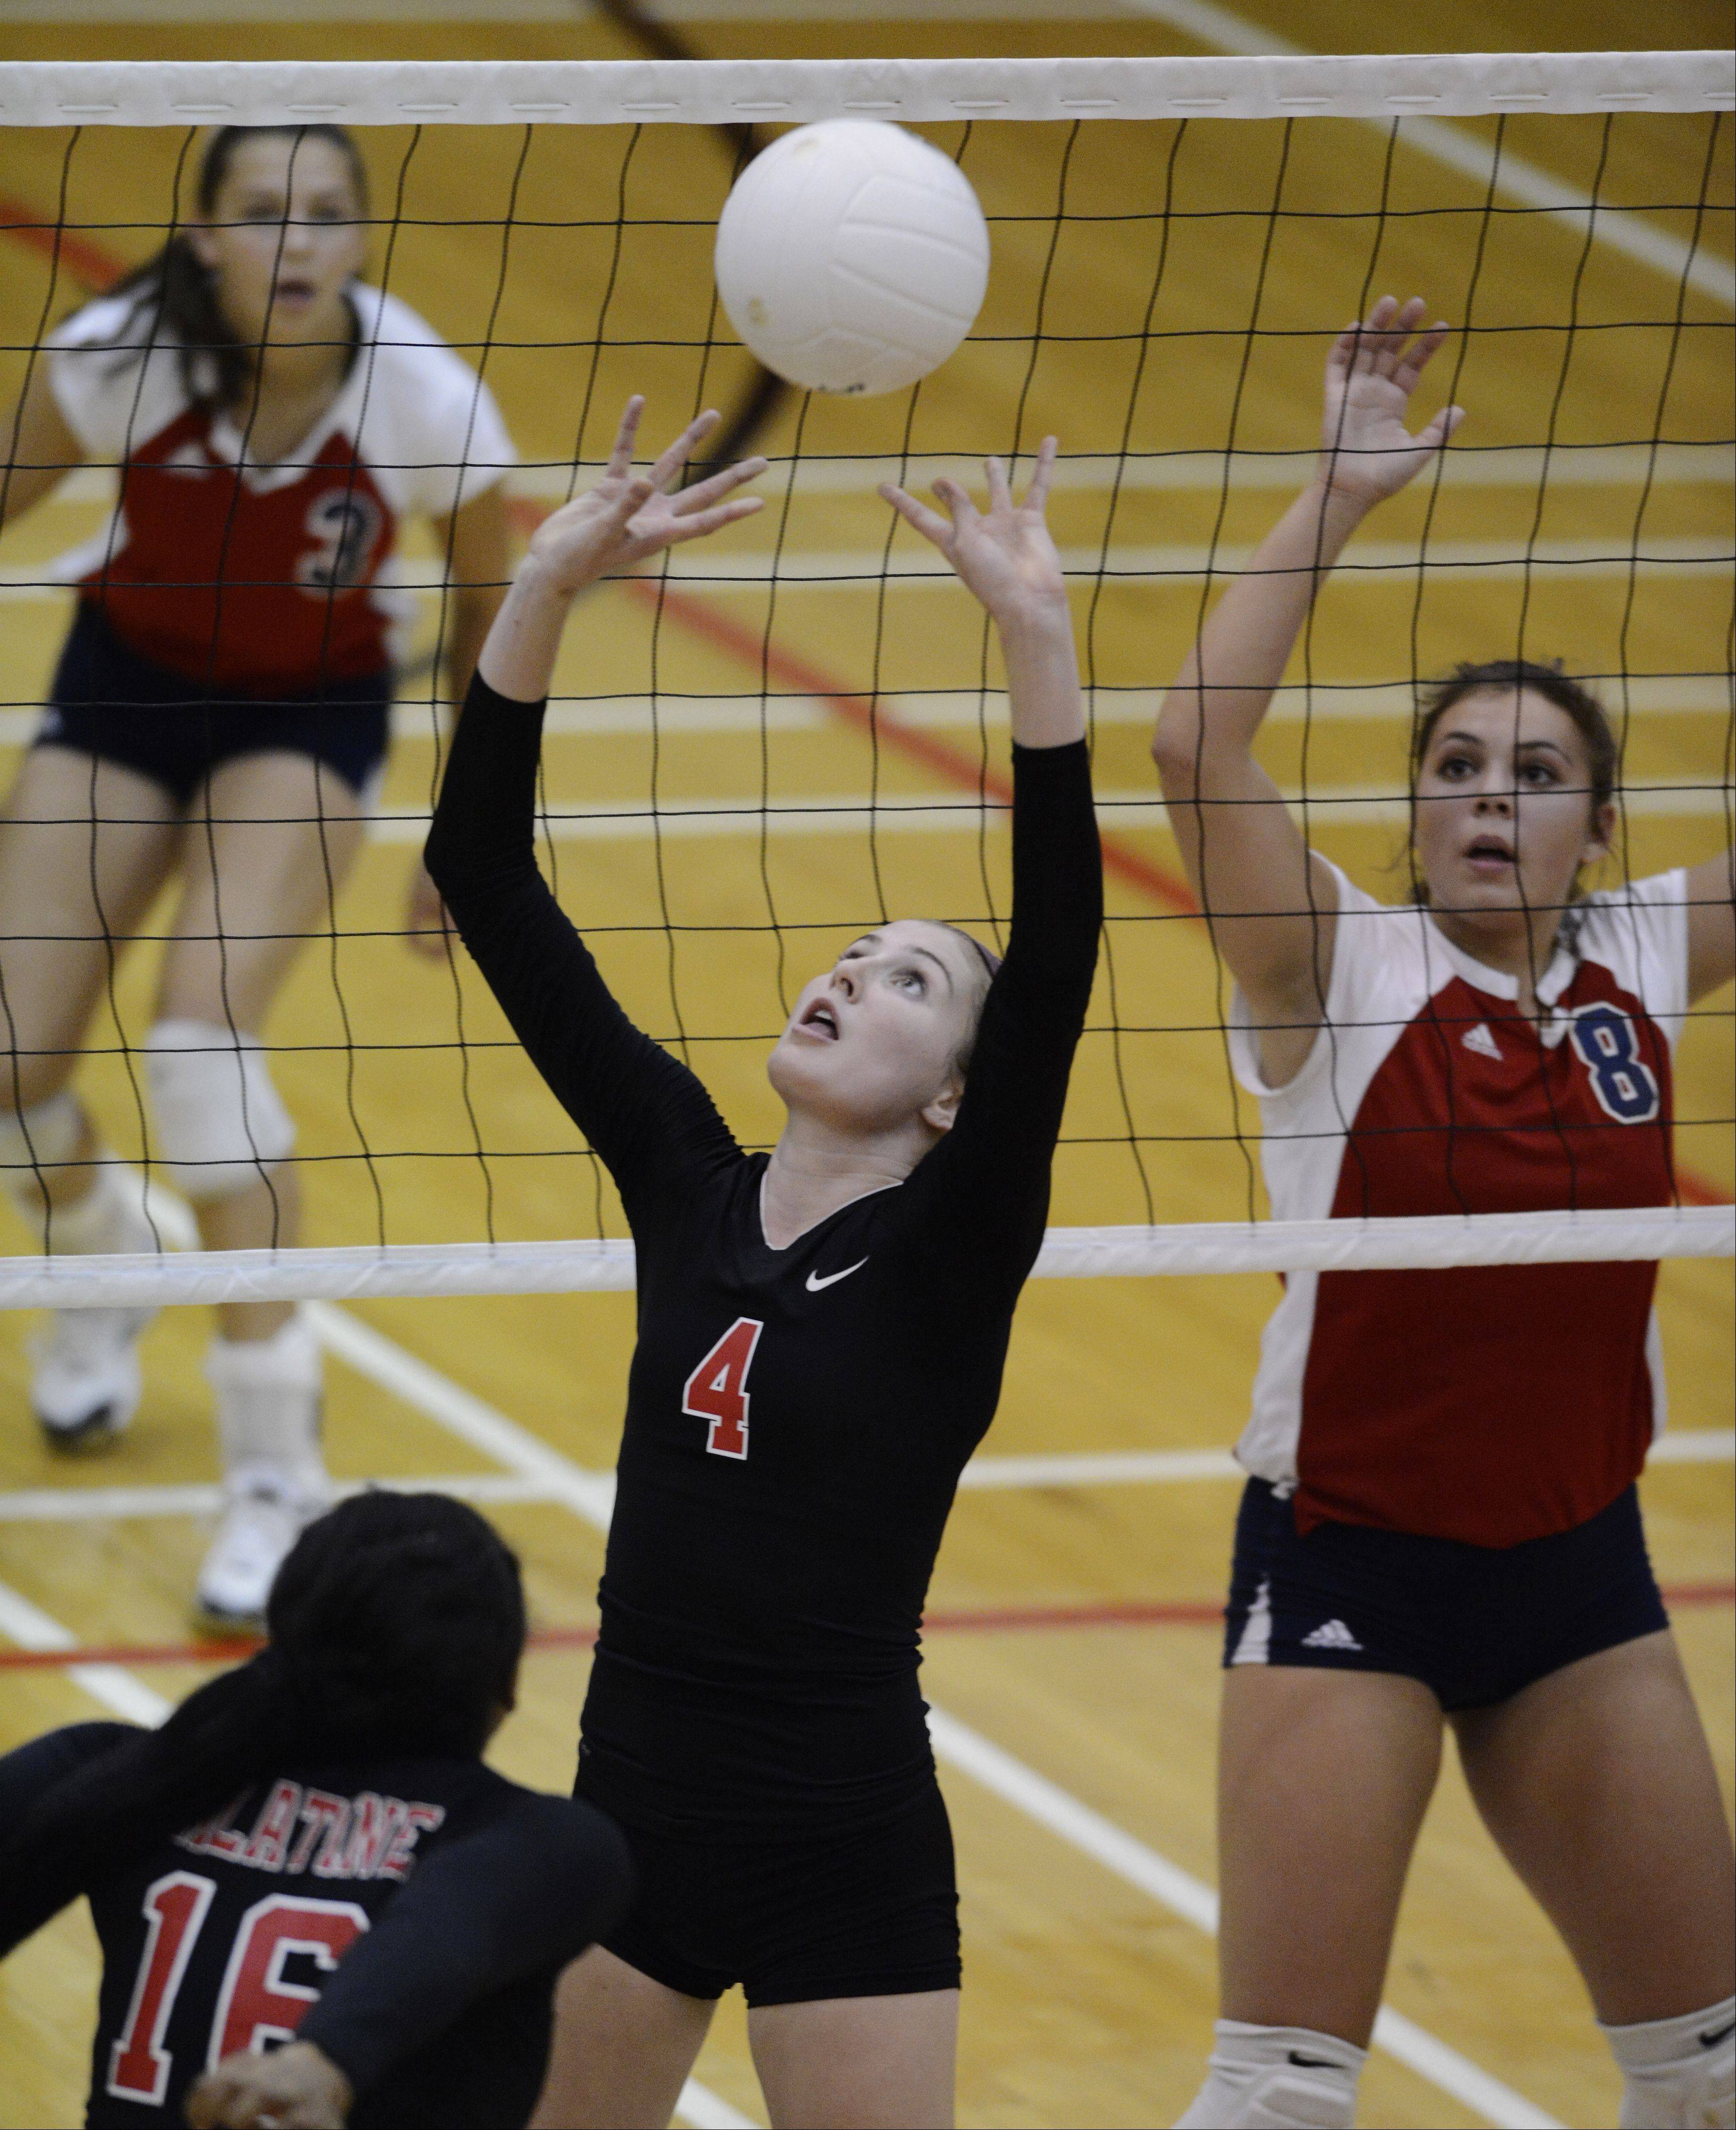 Palatine's Caitlin Riedy sets the ball as Conant's Drea Catalano stands ready at the net during Tuesday's match.